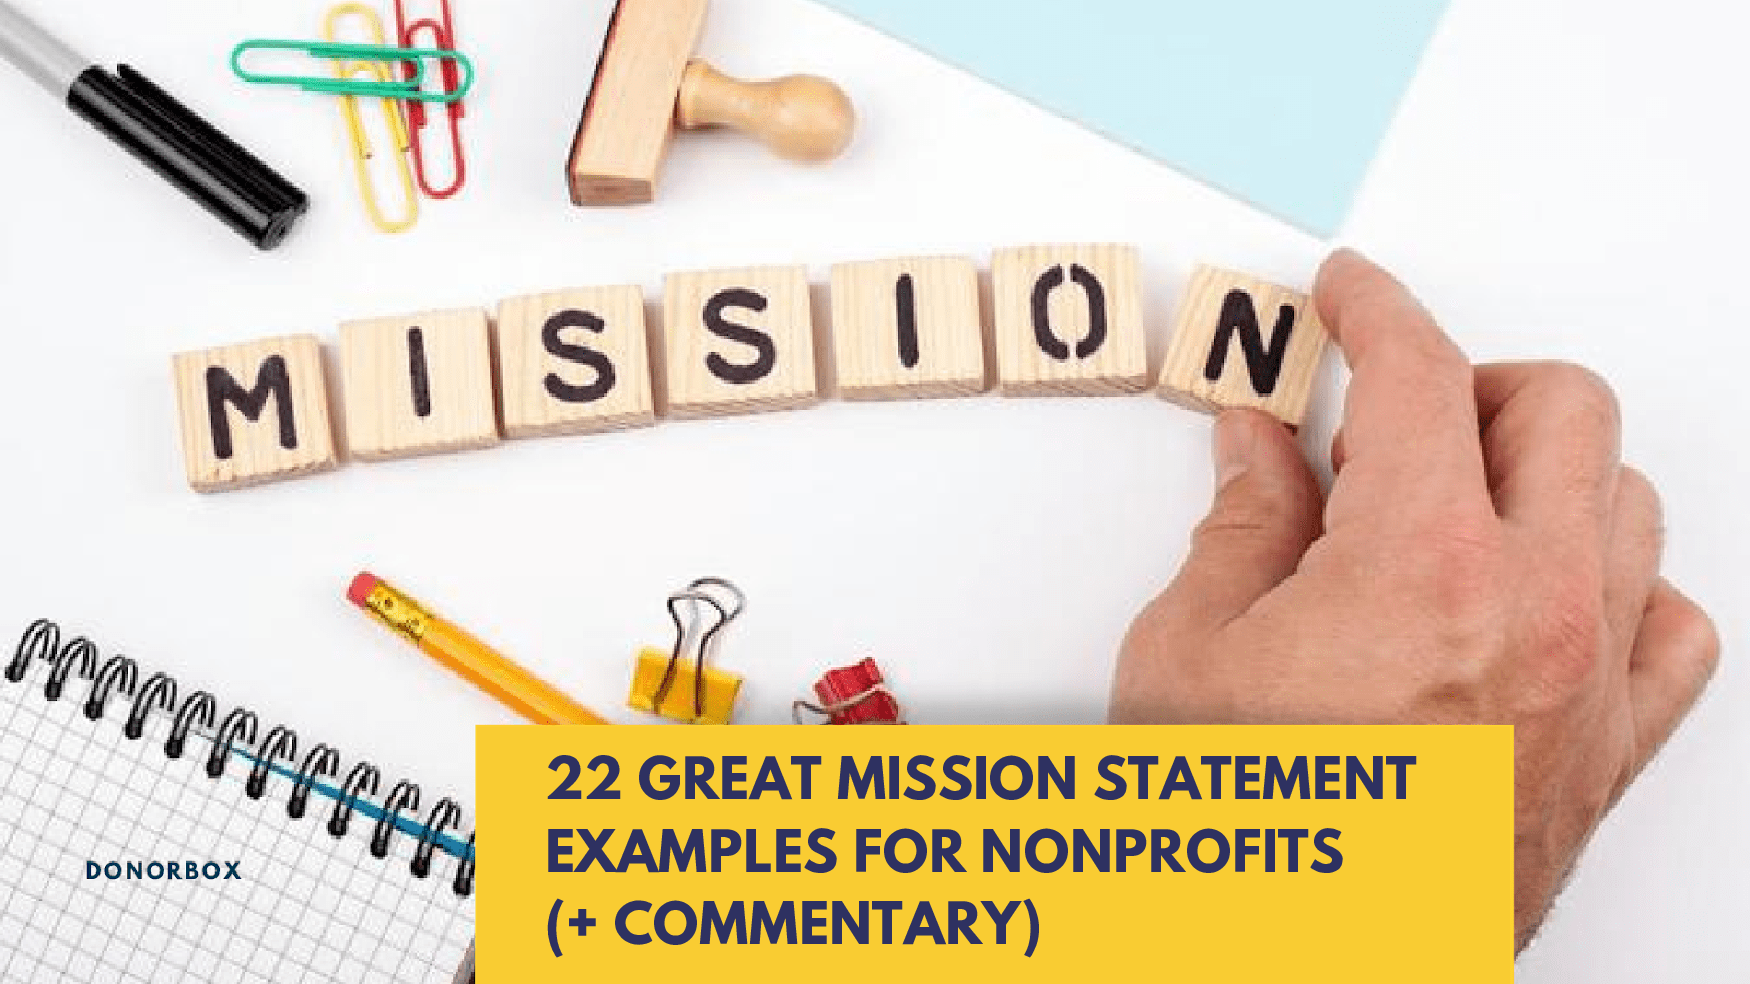 Great Mission Statement Examples for Nonprofits in 2021 (+ Commentary)